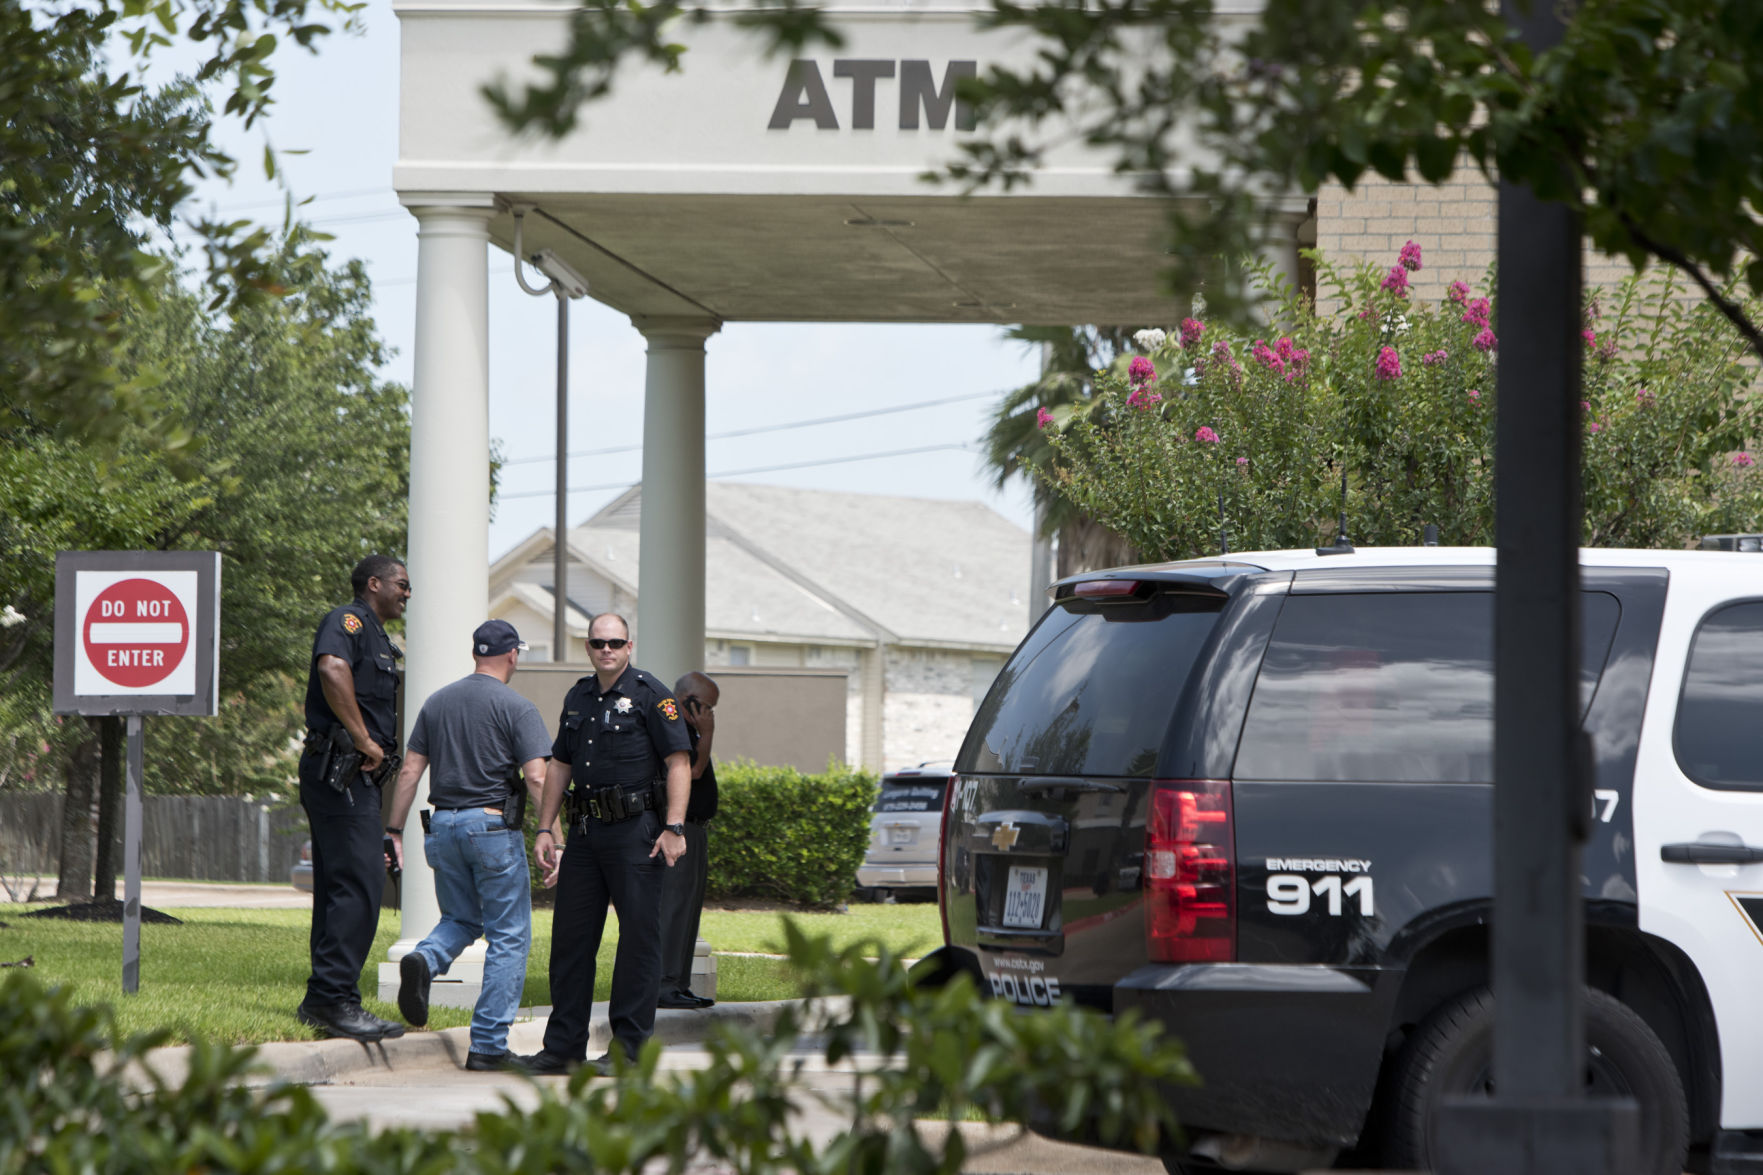 Commerce National Bank Robbery In College Station, Texas